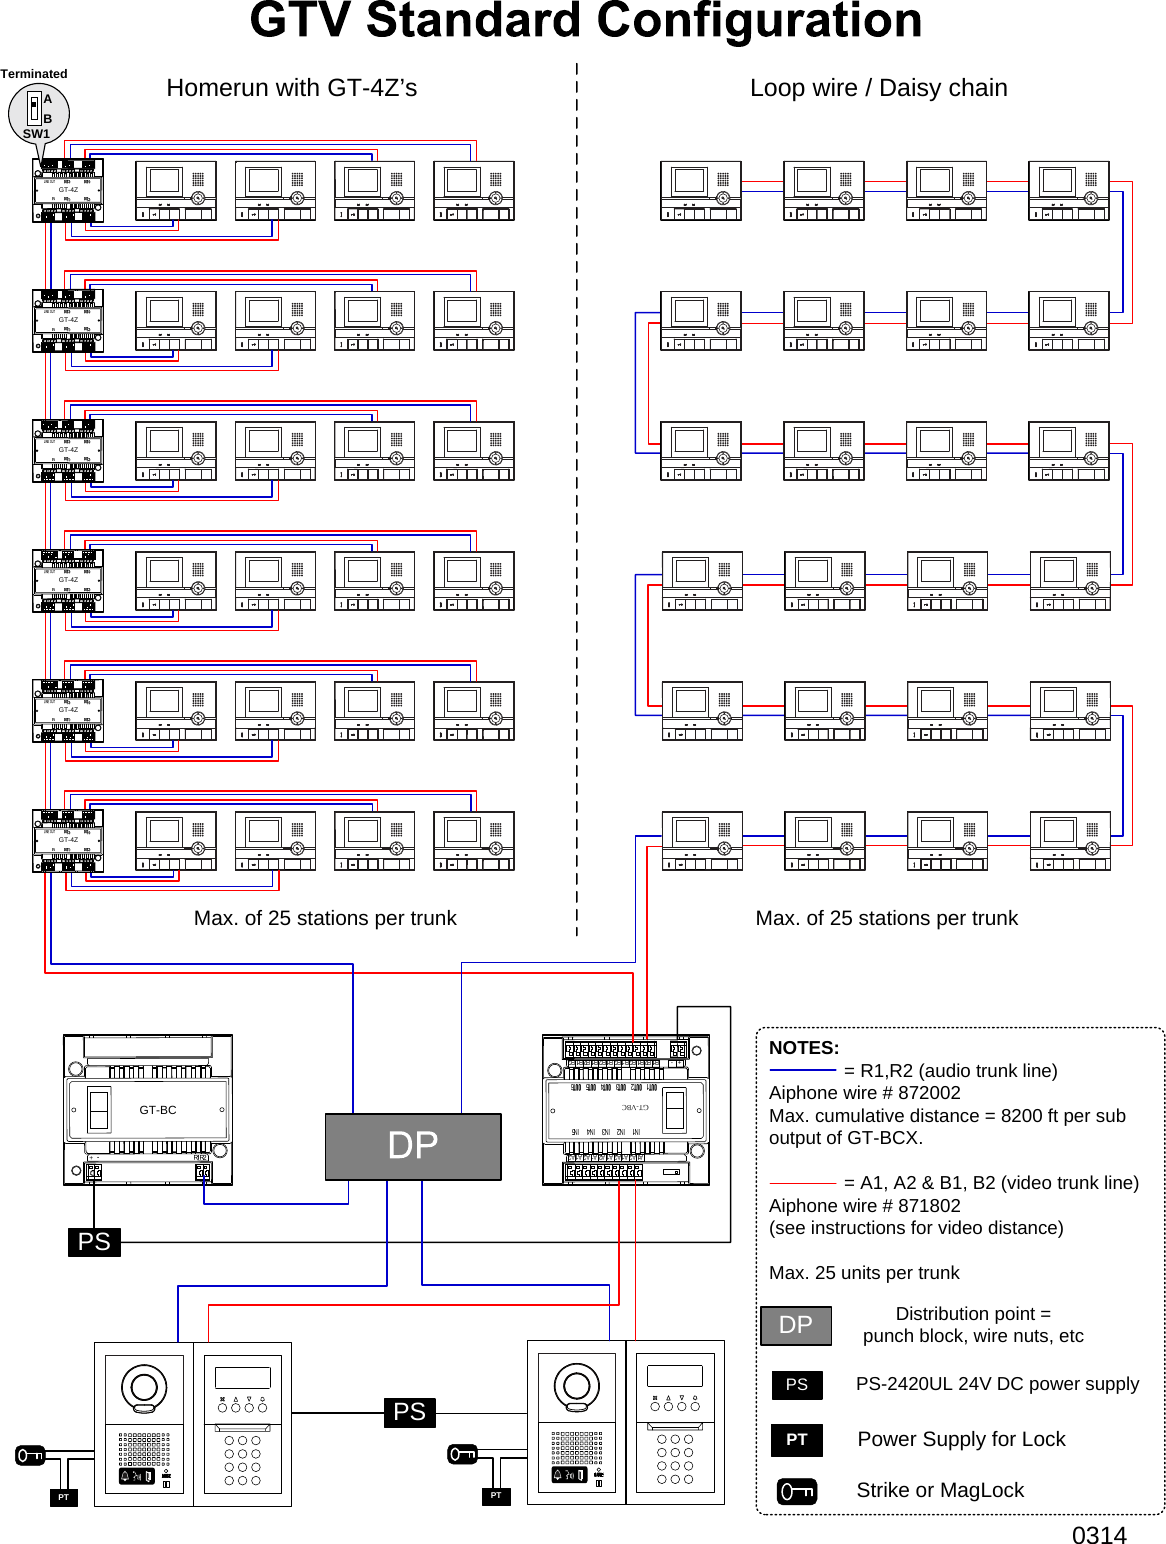 Aiphone Visio GTV Standard Wiring Diagram Configuration on